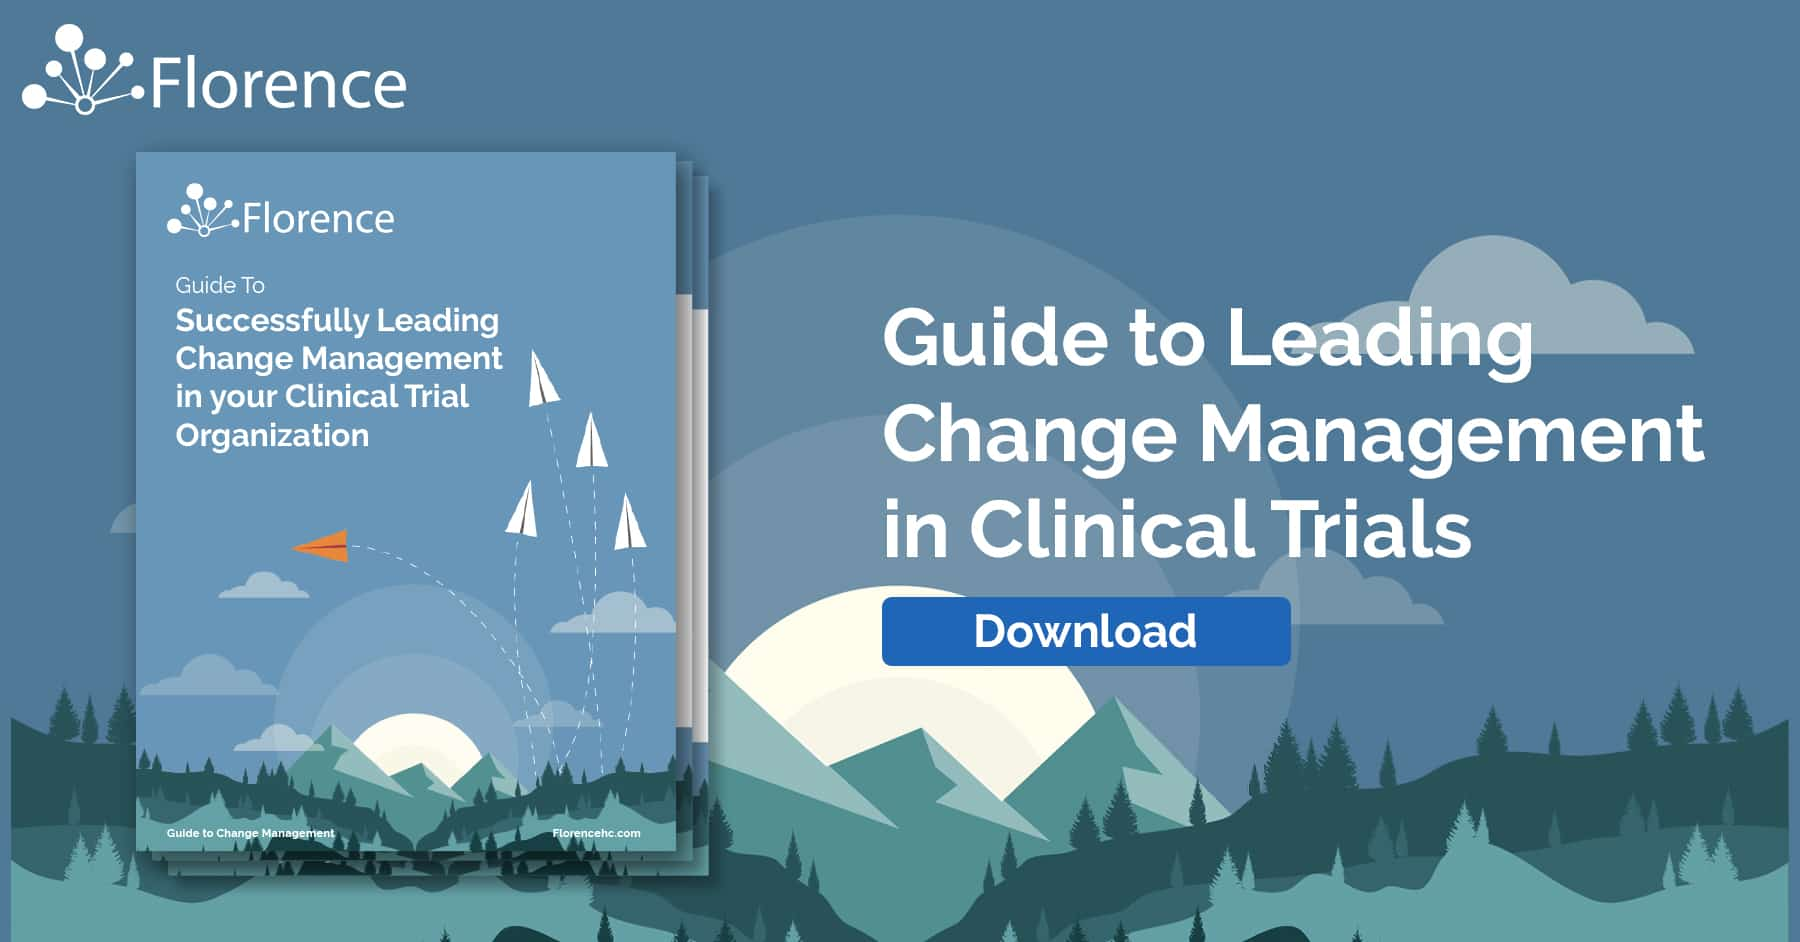 Guide to Successful Change Management in Clinical Trials